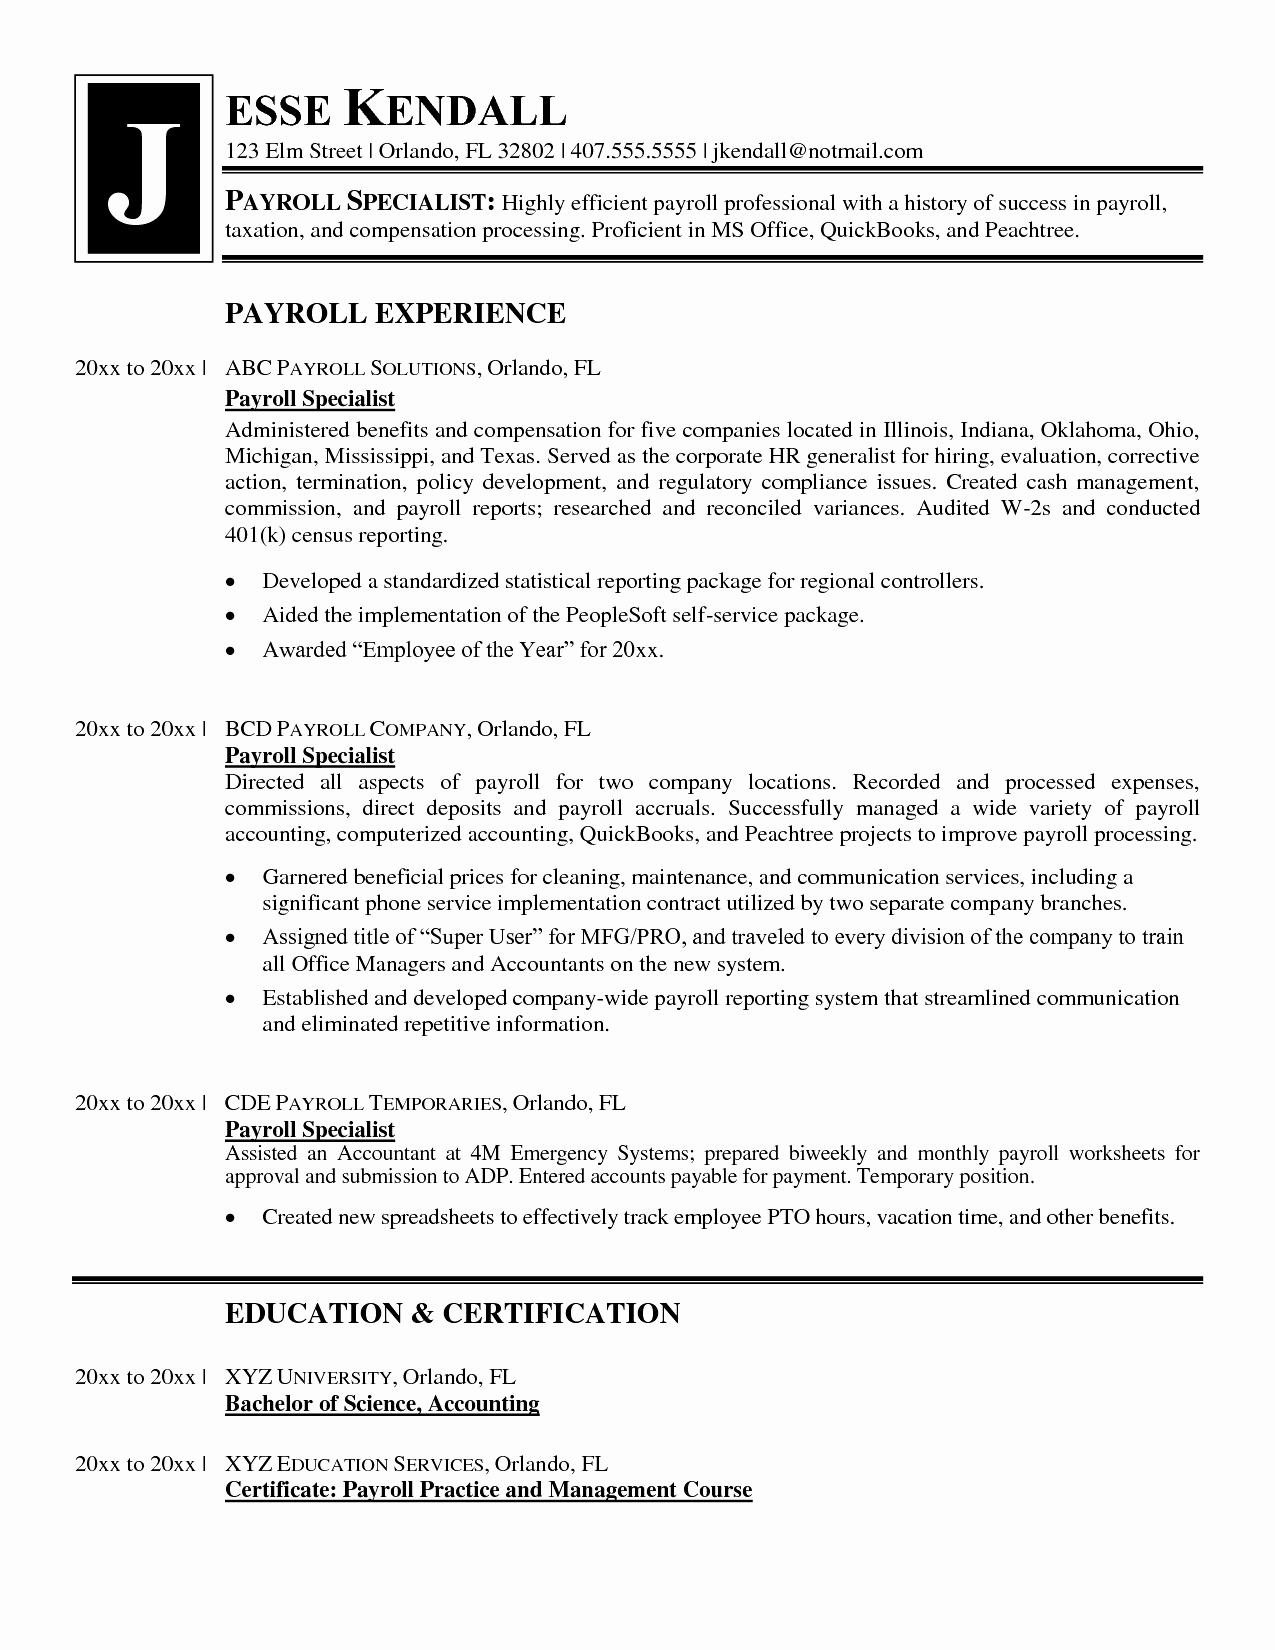 50 Nice Payroll Specialist Resume with Ideas